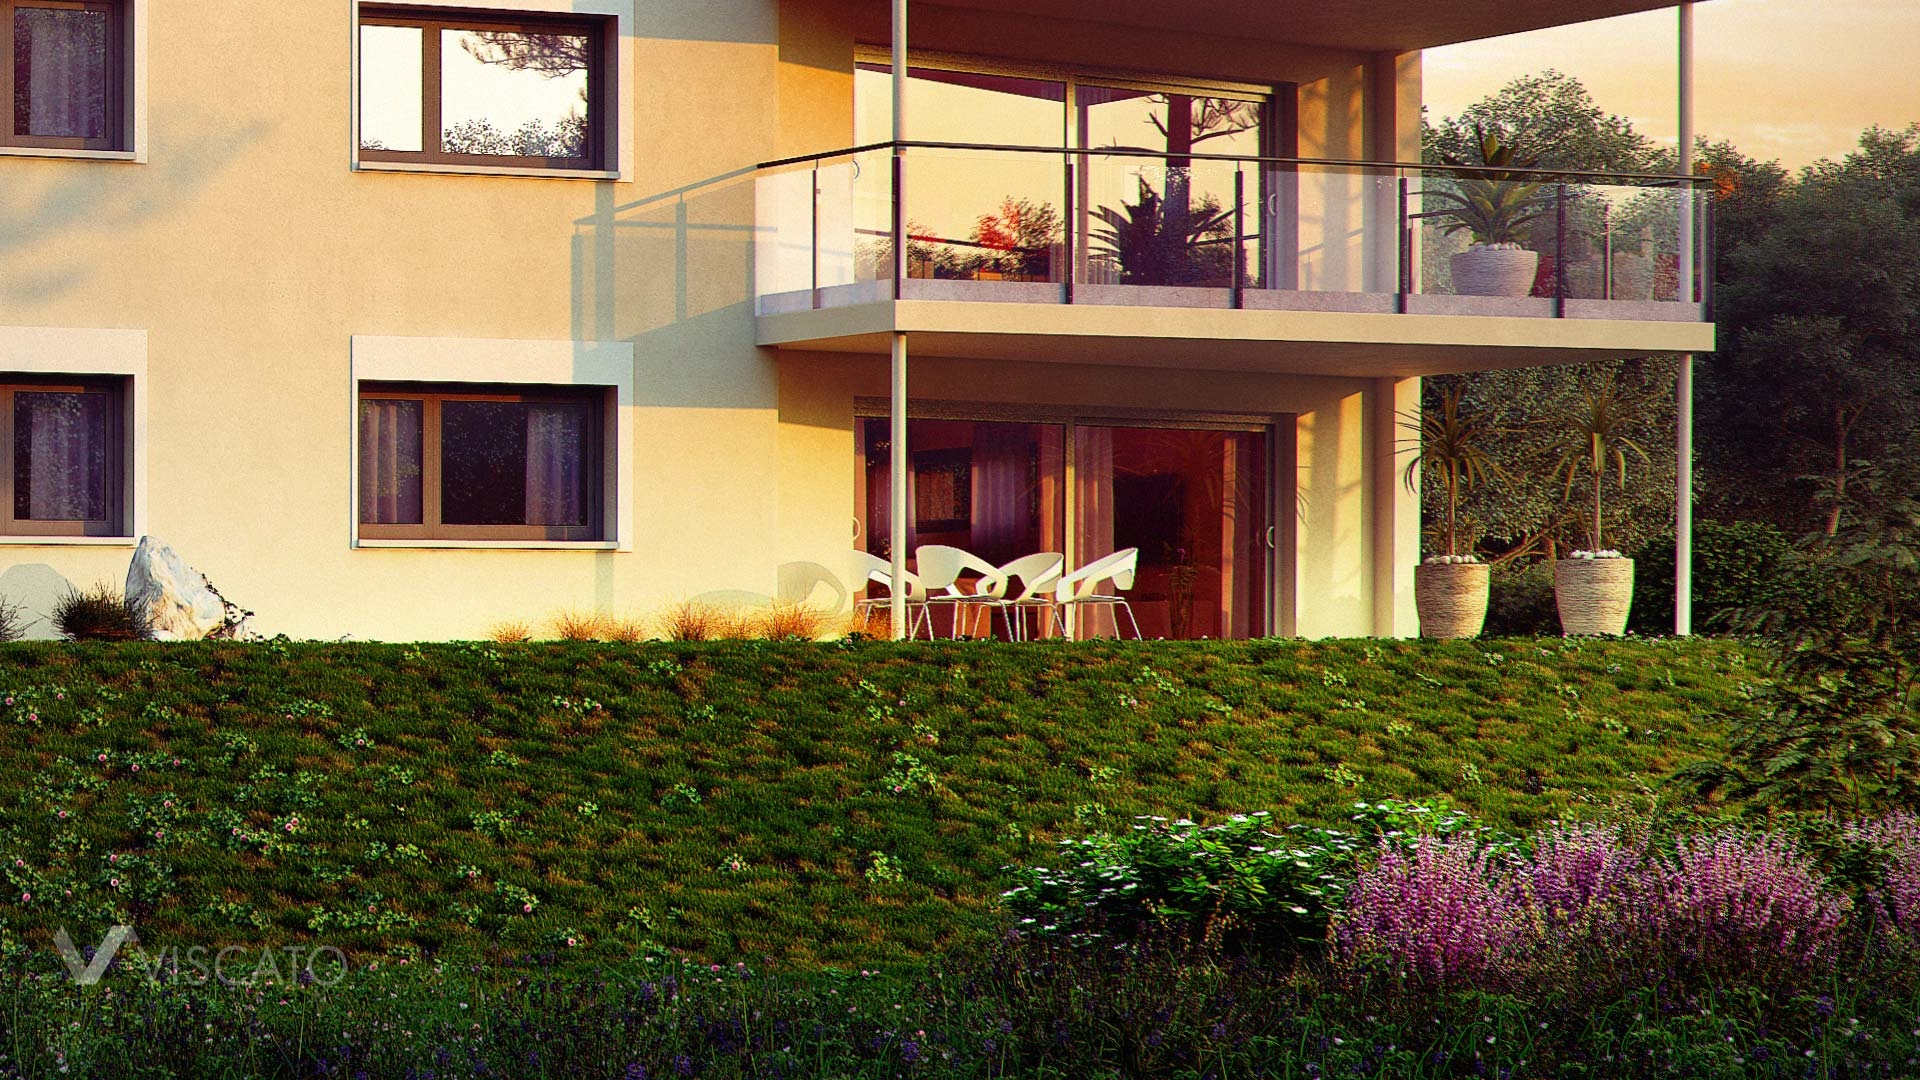 Sunset exterior visualization of multi family real estate - detail of garden